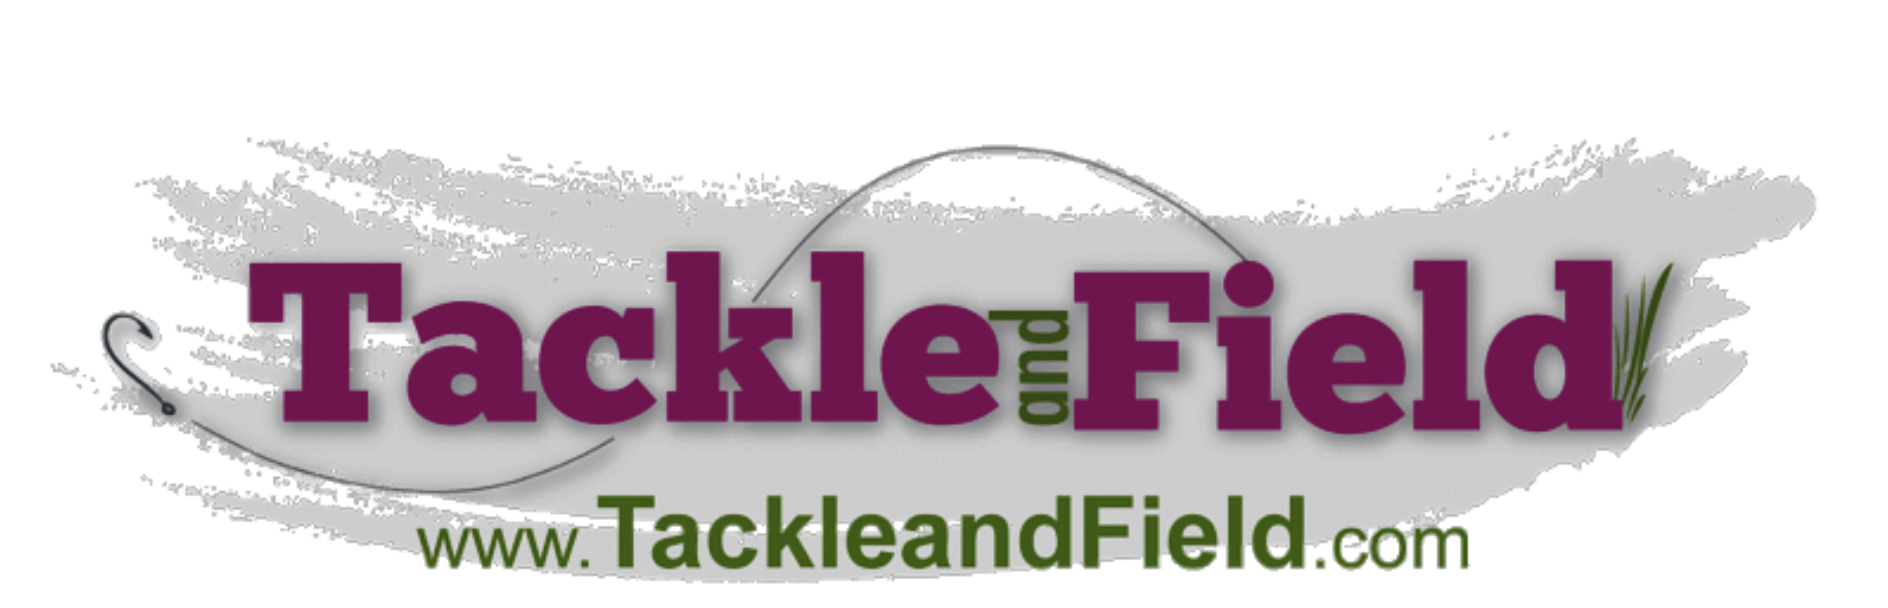 tackle and field logo